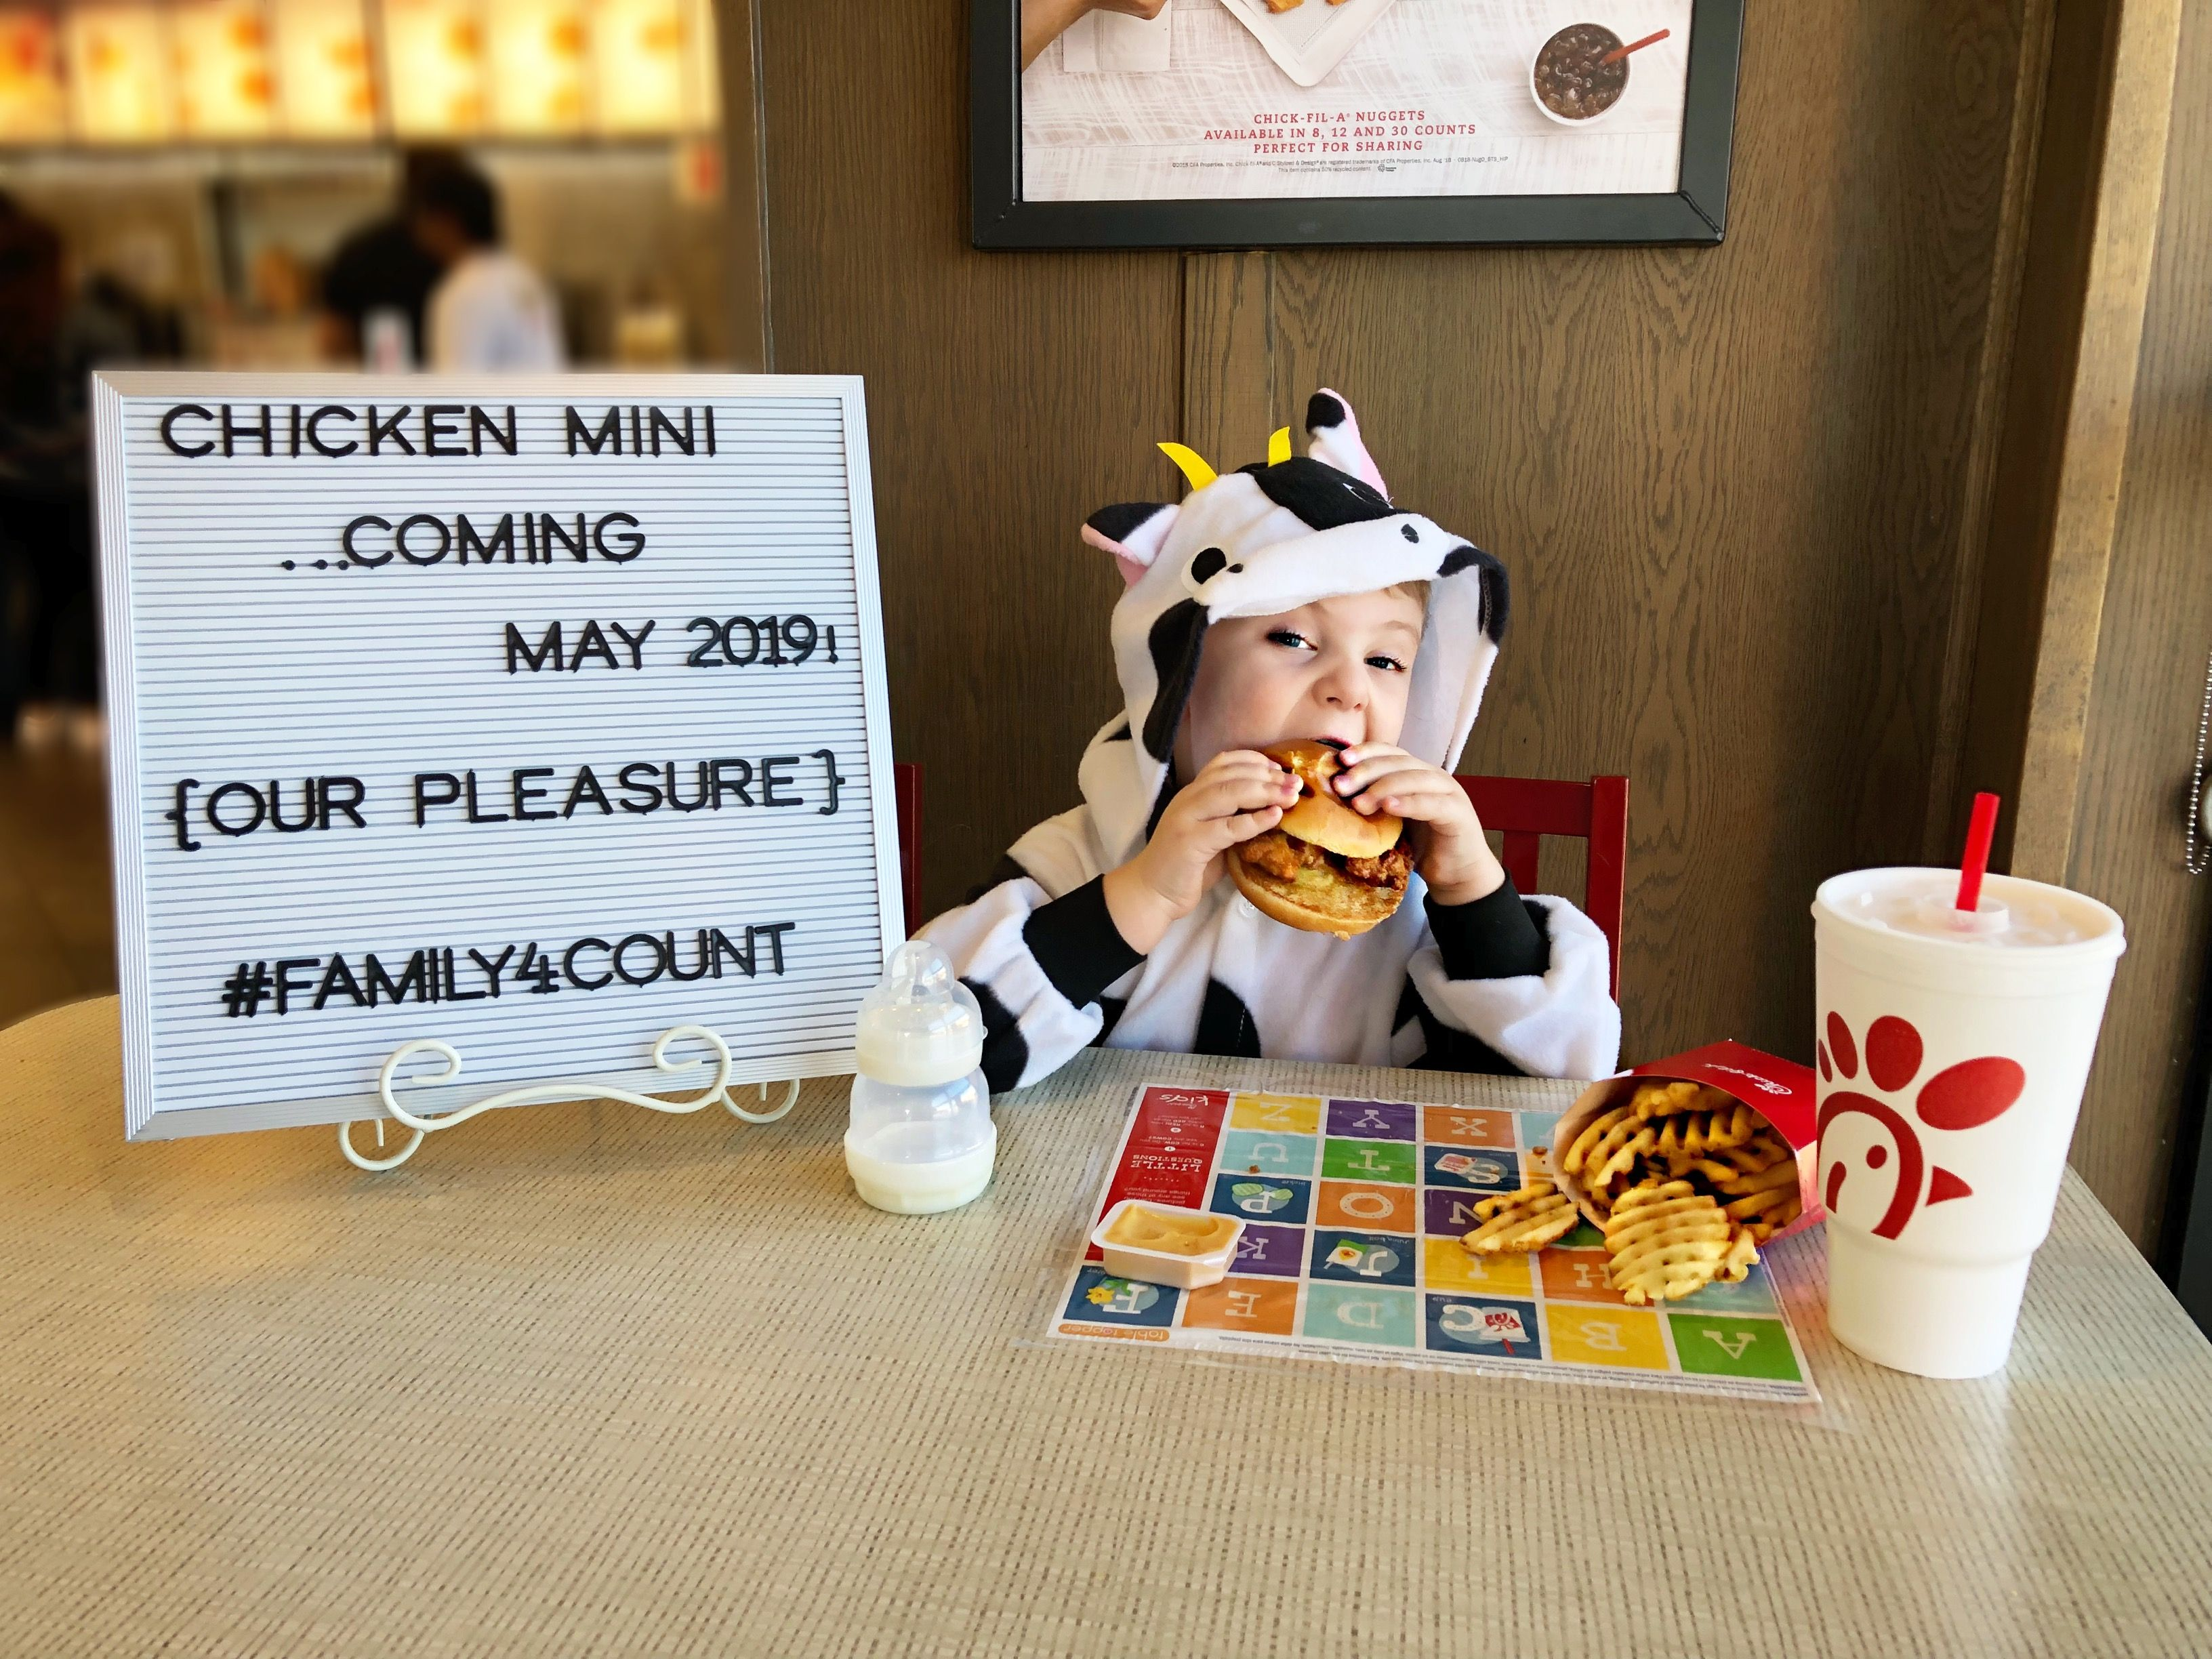 6628dcb26 Have to share our chick fil a. Pregnancy announcement. Follow me on IG  @baileymakesnbakes